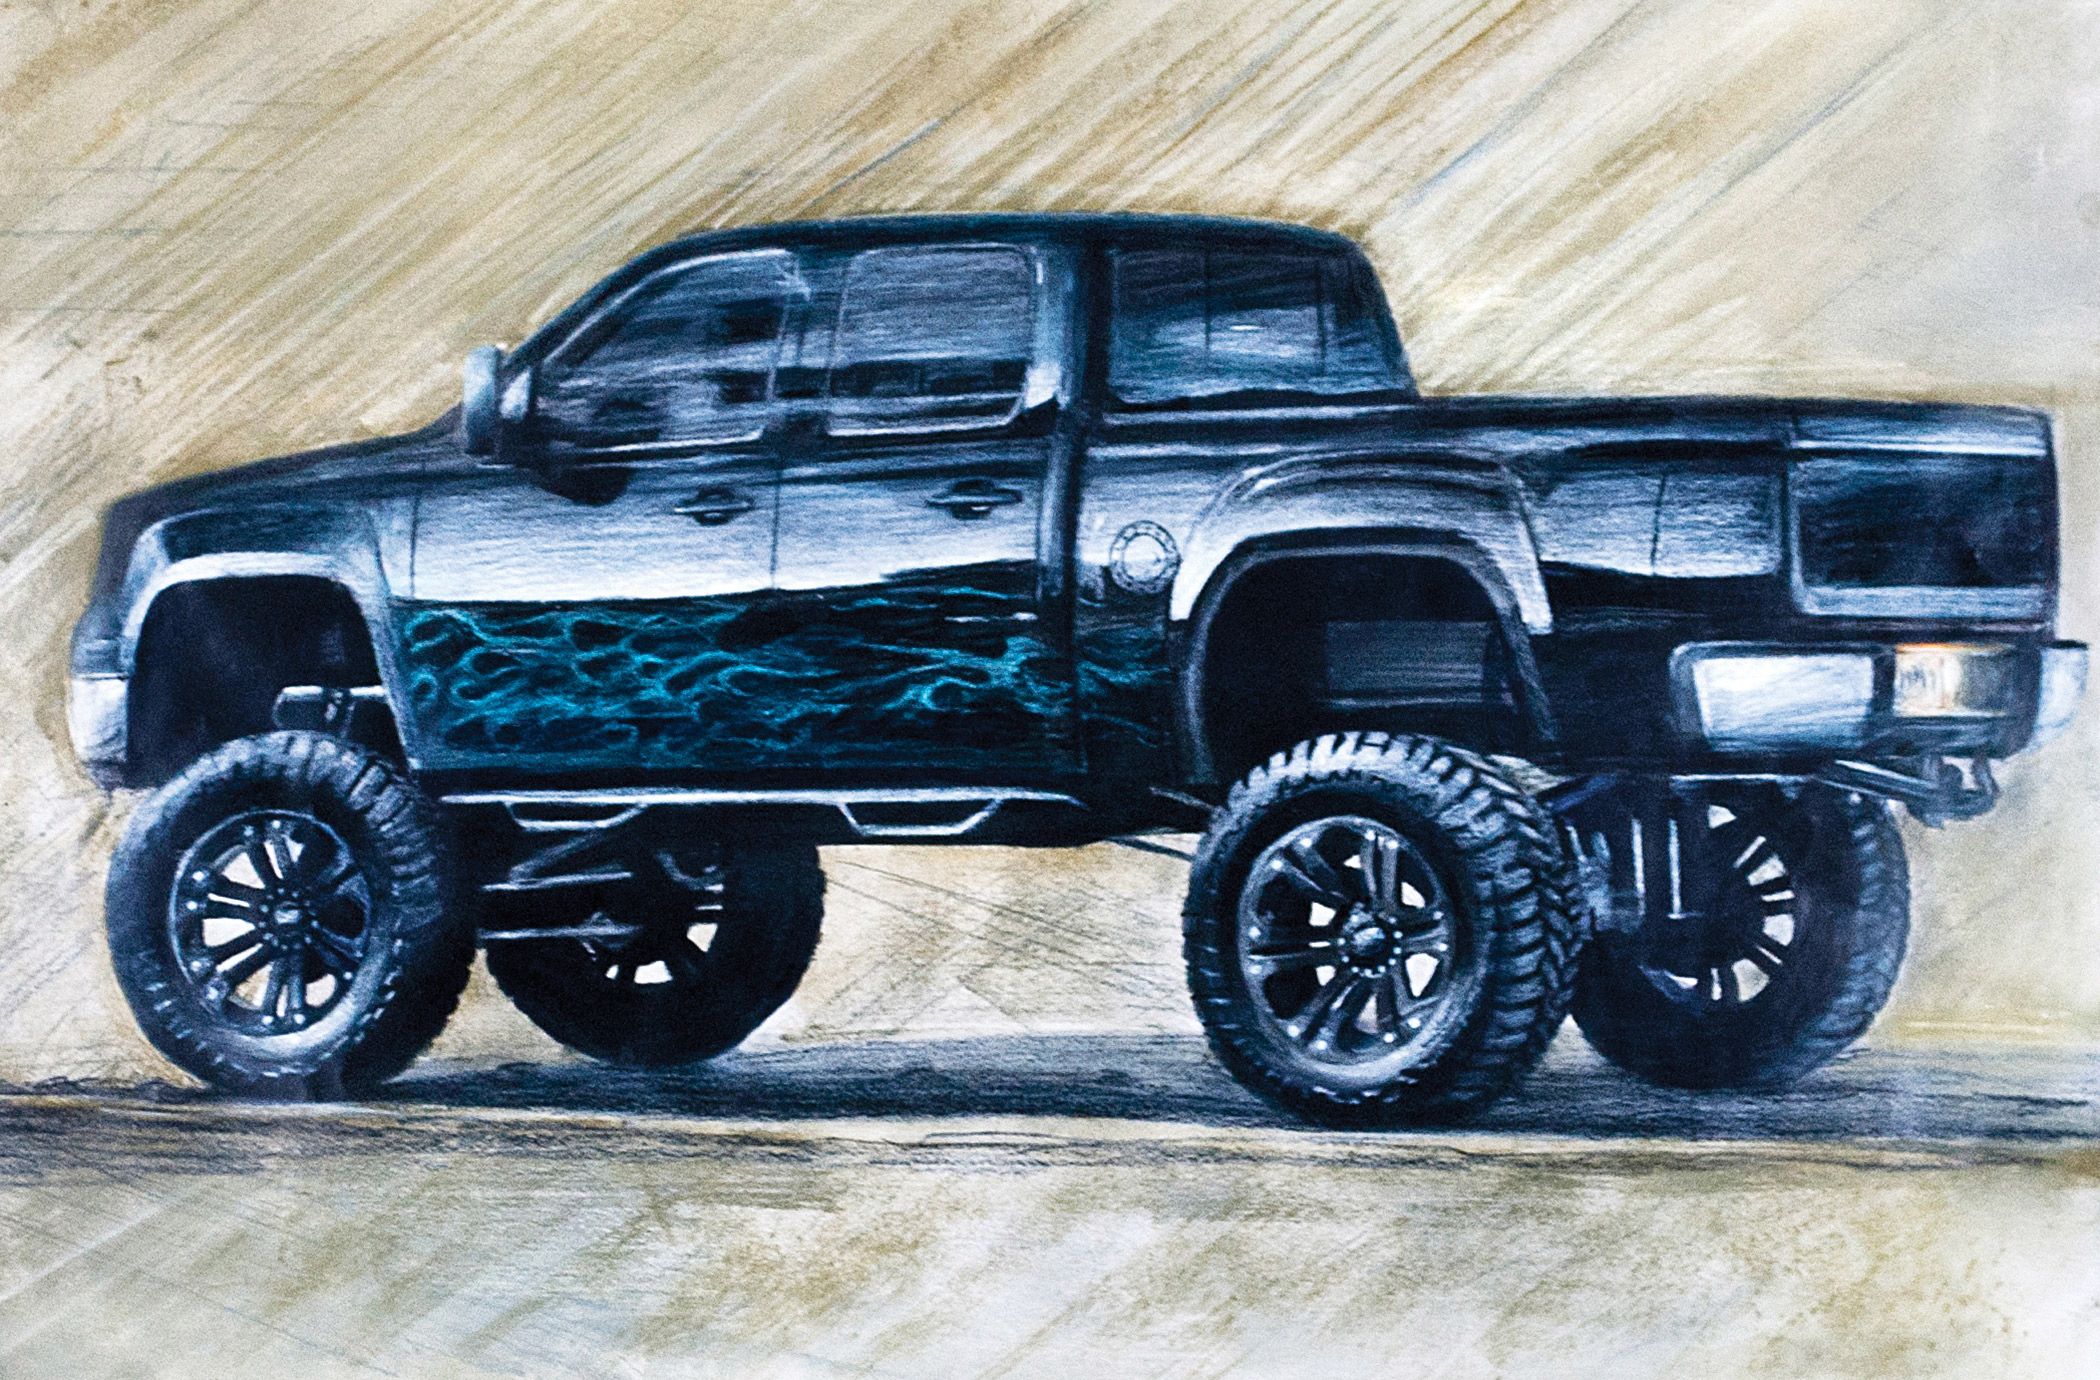 2100x1380 Sketch Of Black Lifted Chevrolet Silverado Truck Drawing Ideas